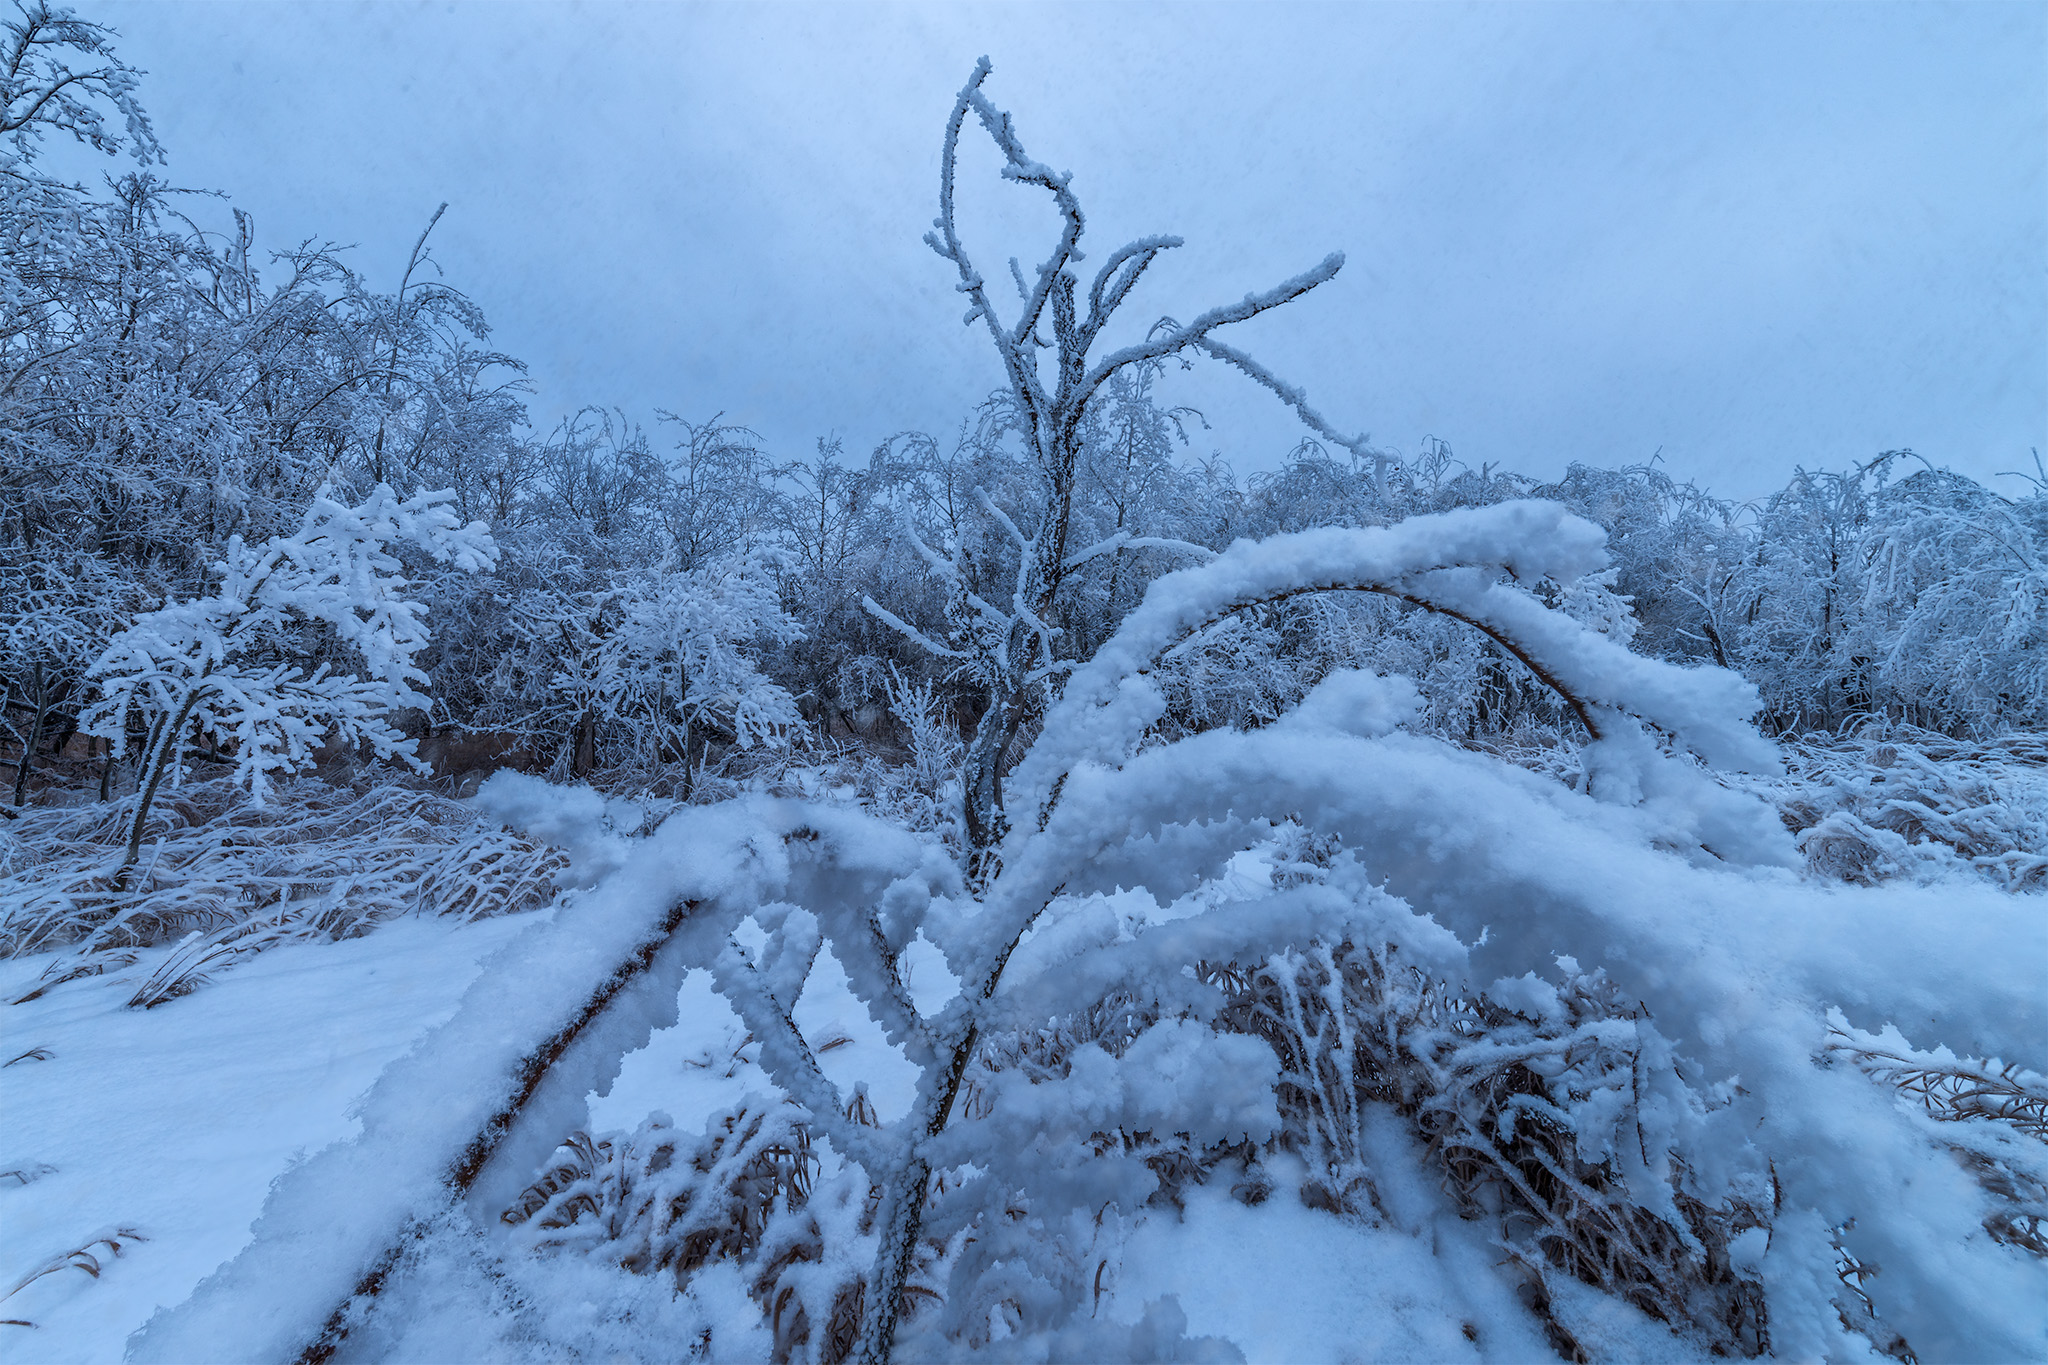 Landscape Photography in White Butte Trails Saskatchewan. Frozen trees under a layer of hoar frost